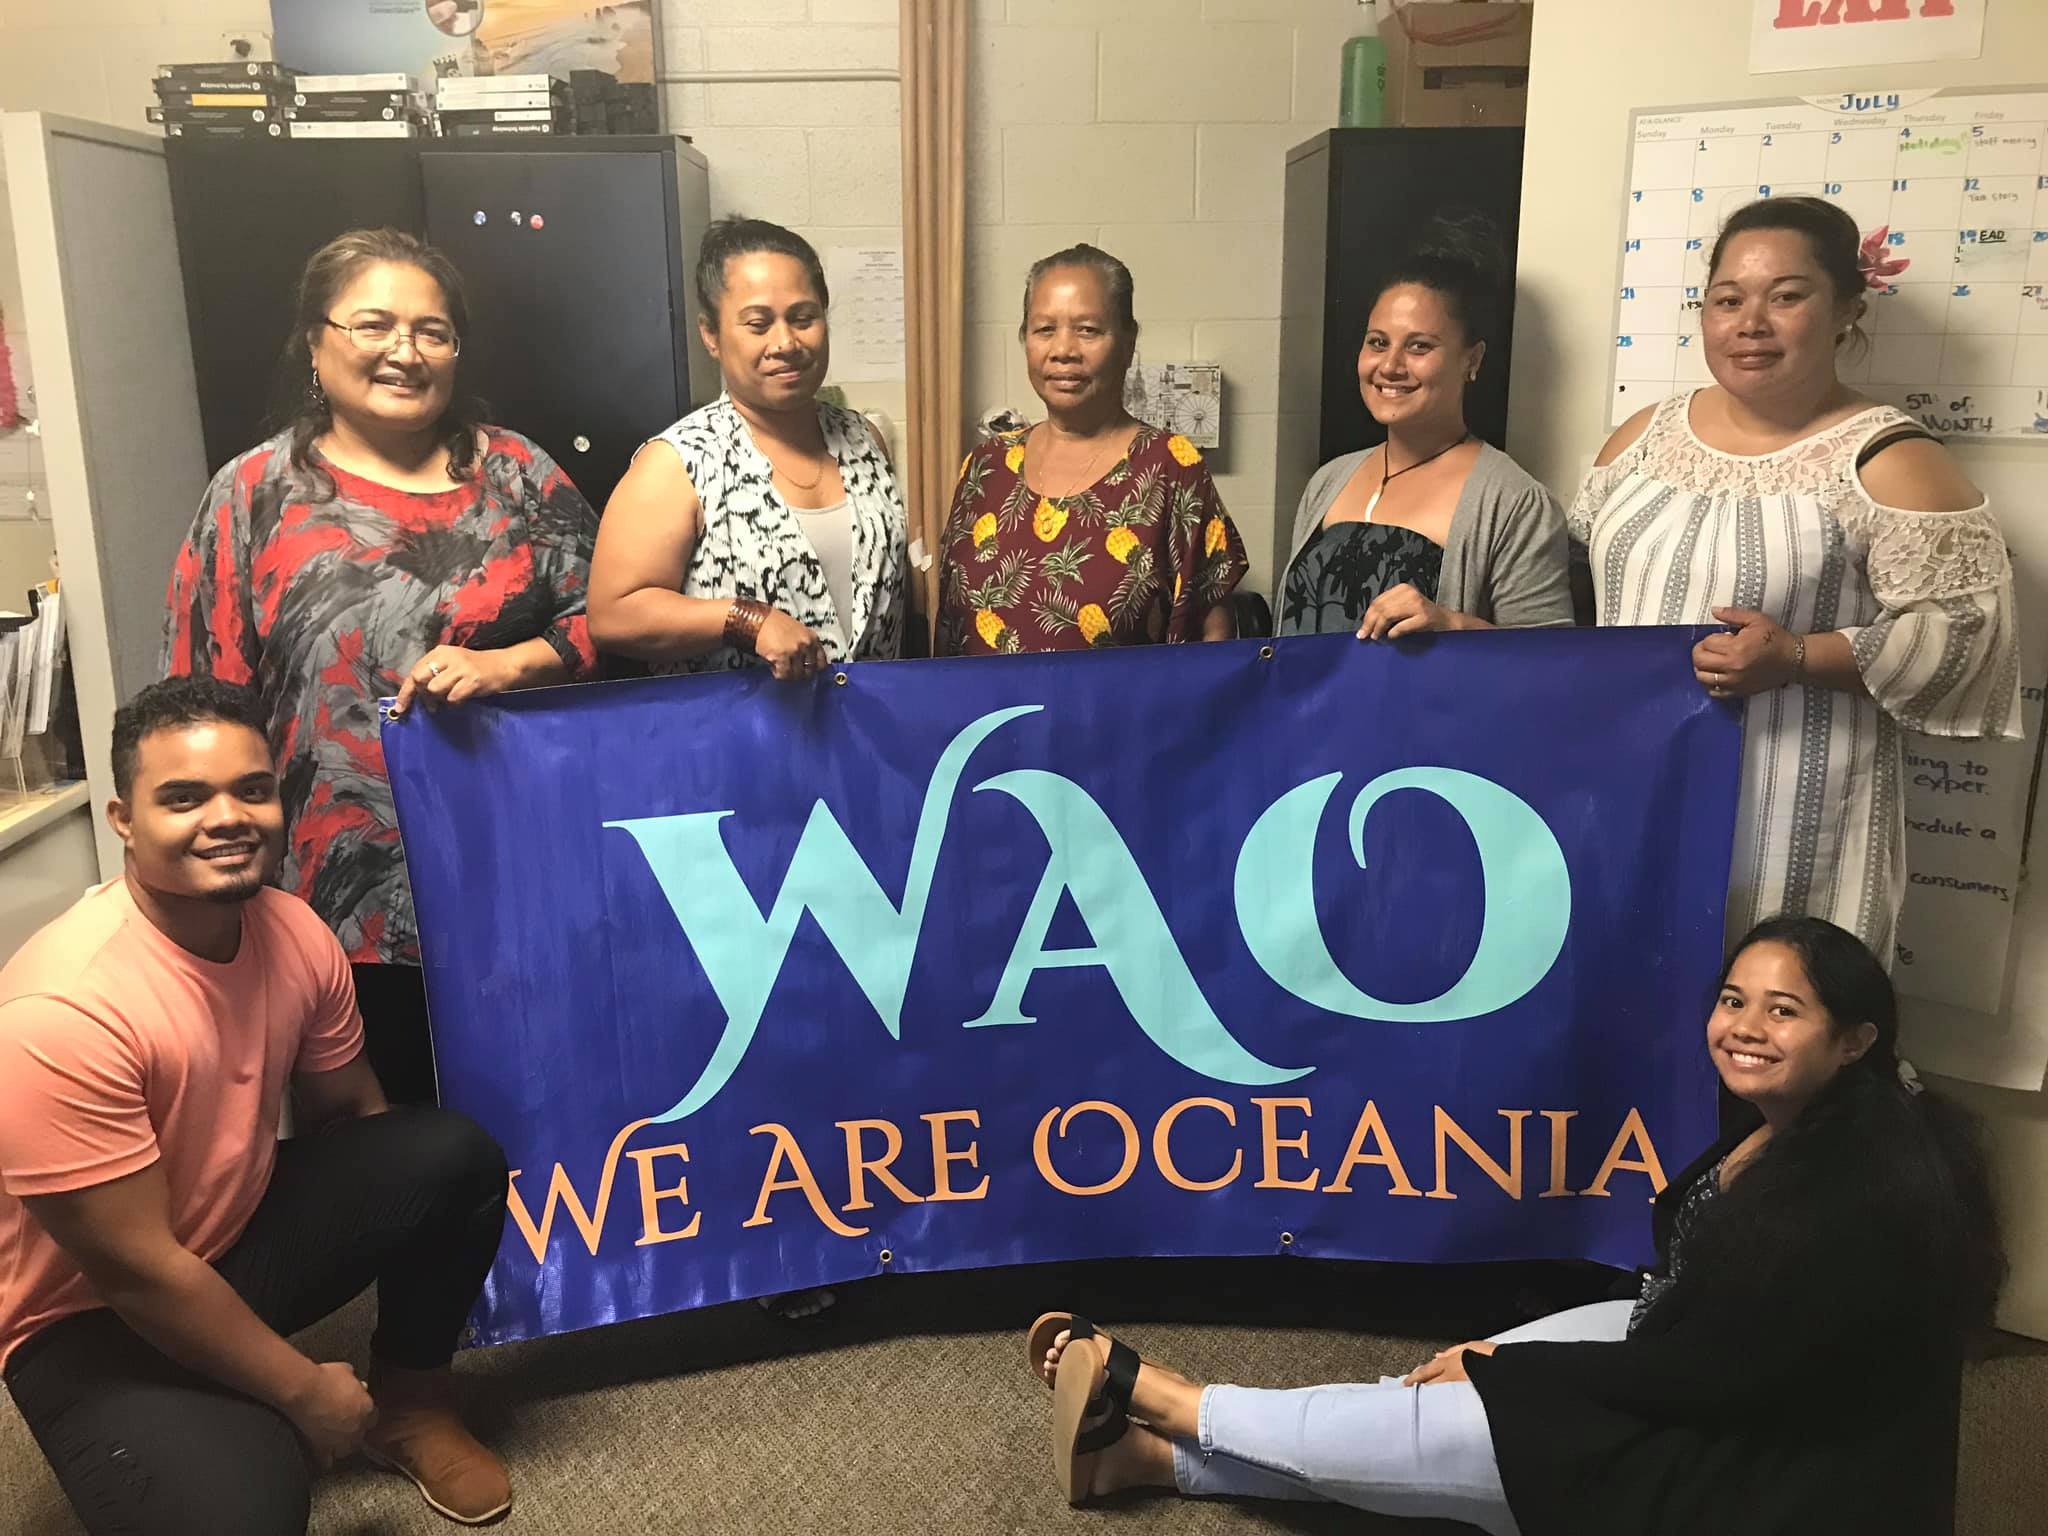 We Are Oceania